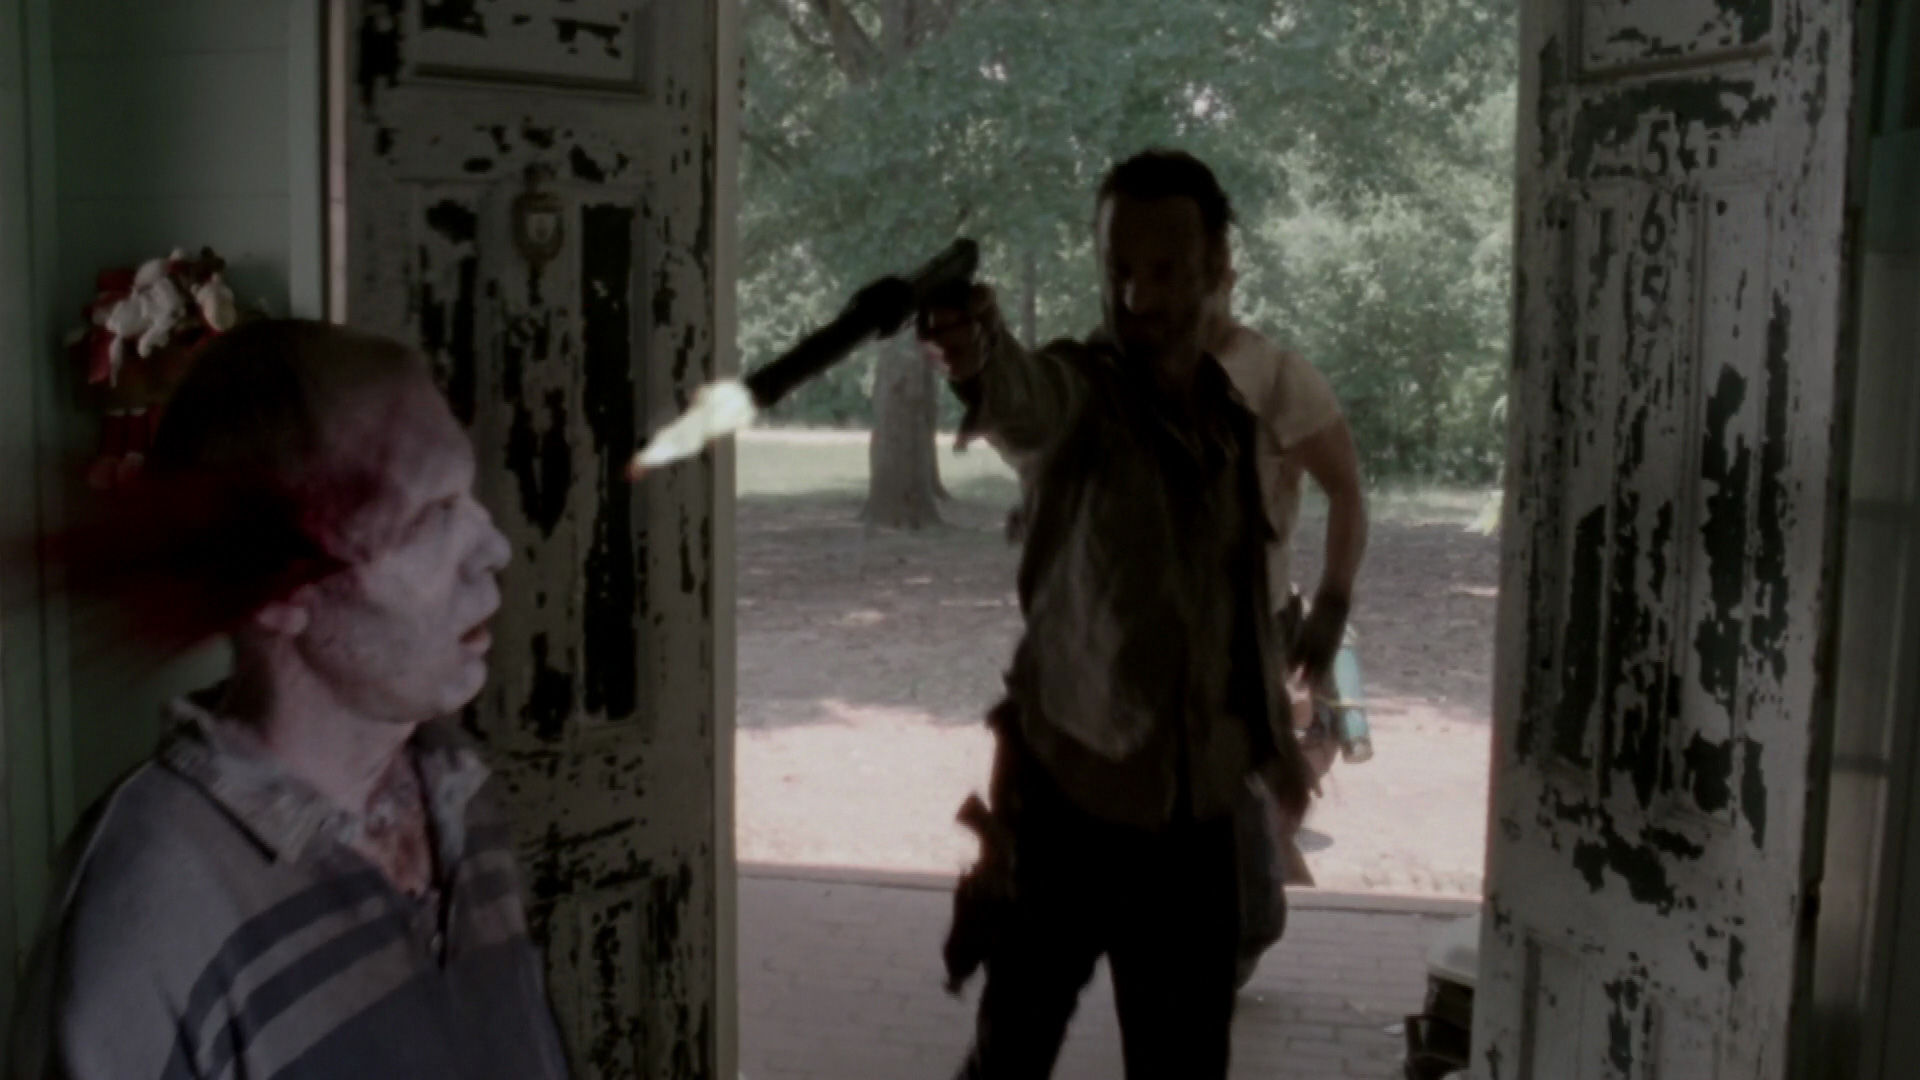 As the world grows more dangerous and Lori's pregnancy advances, Rick locates a potentially safe haven.